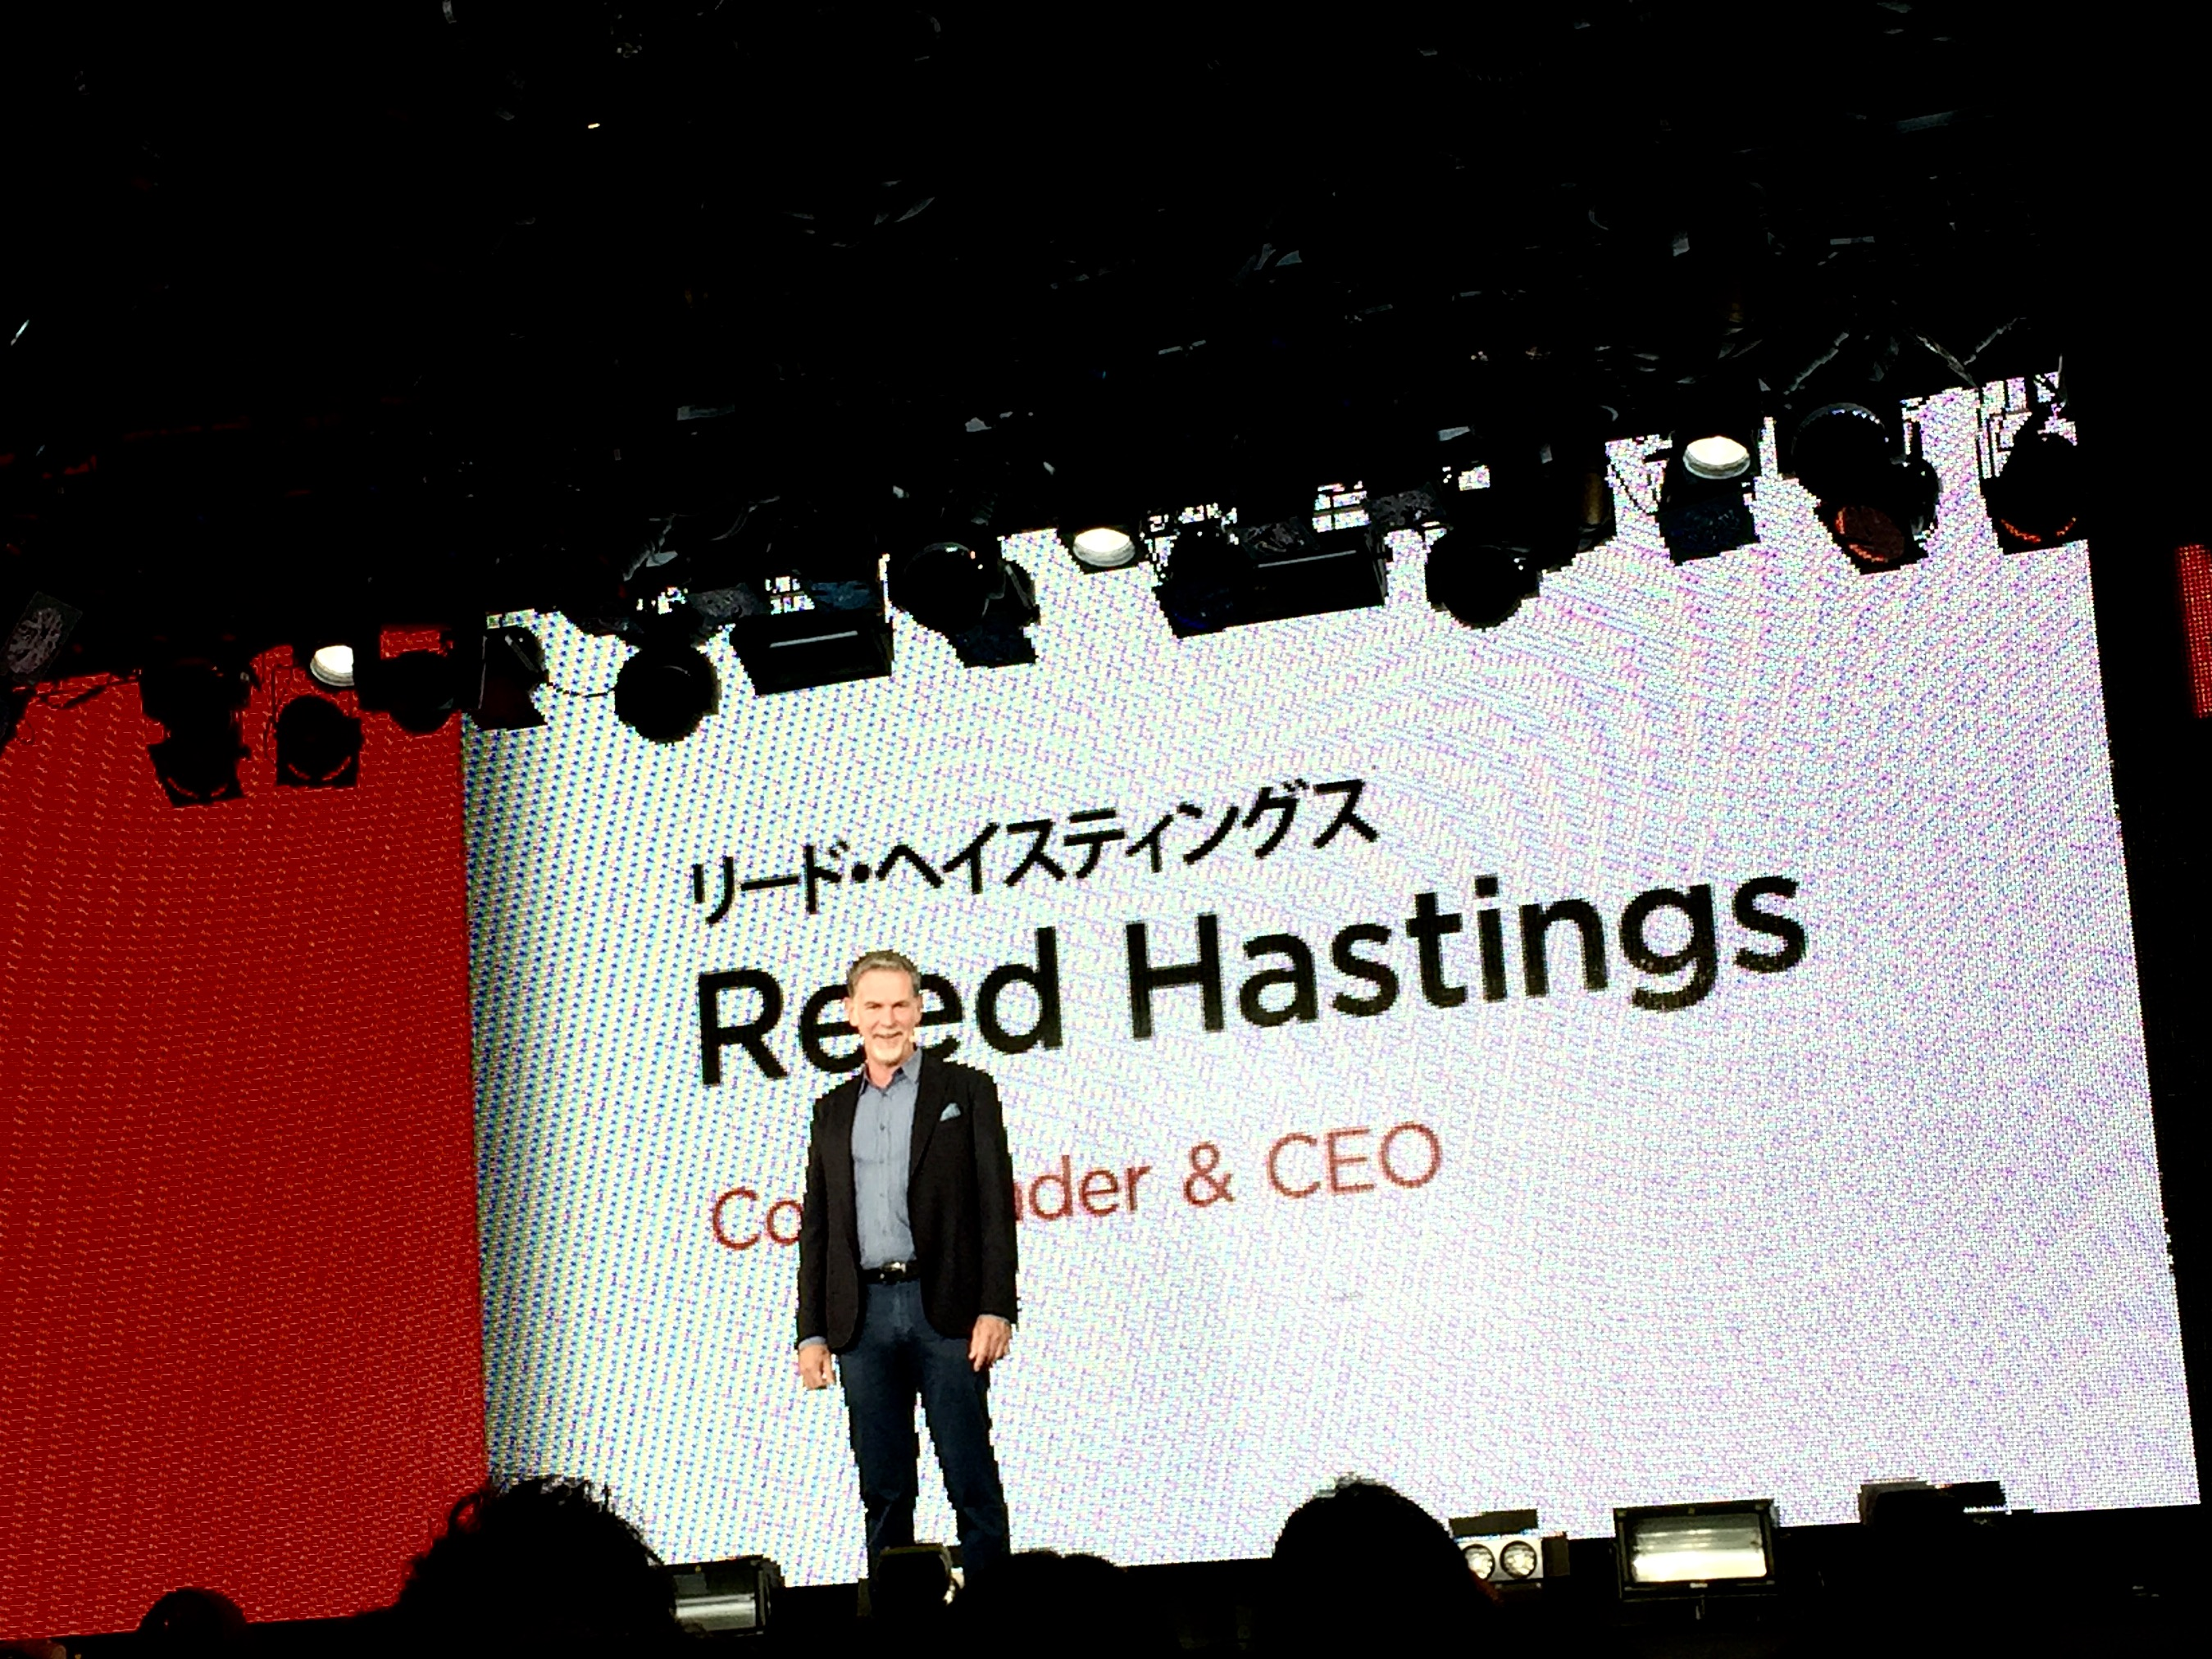 Netflix hastings CEO